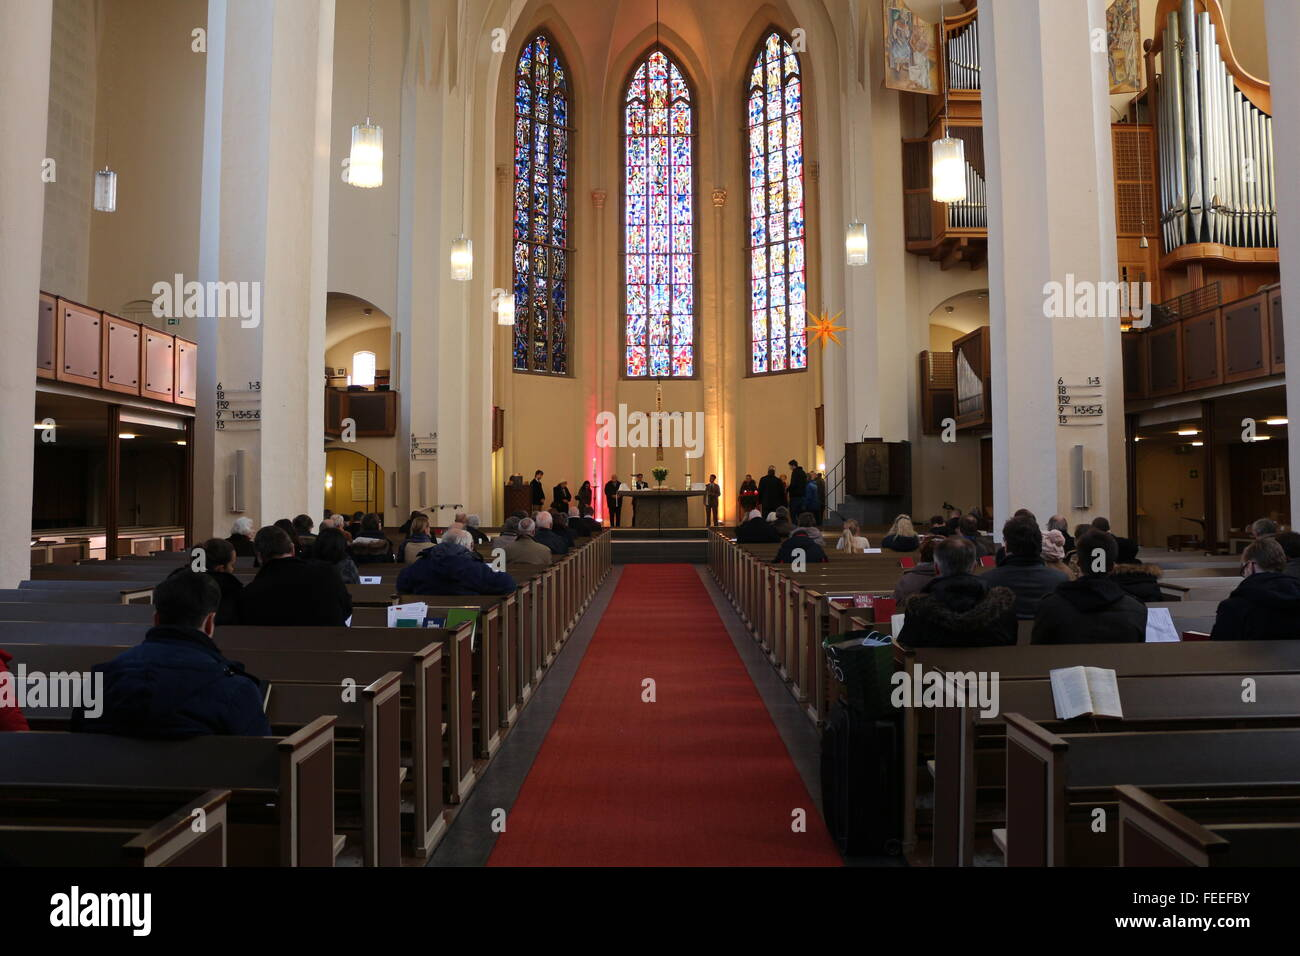 look into the Protestant Church 'Kreuzkirche' in Bonn, Germany - Stock Image